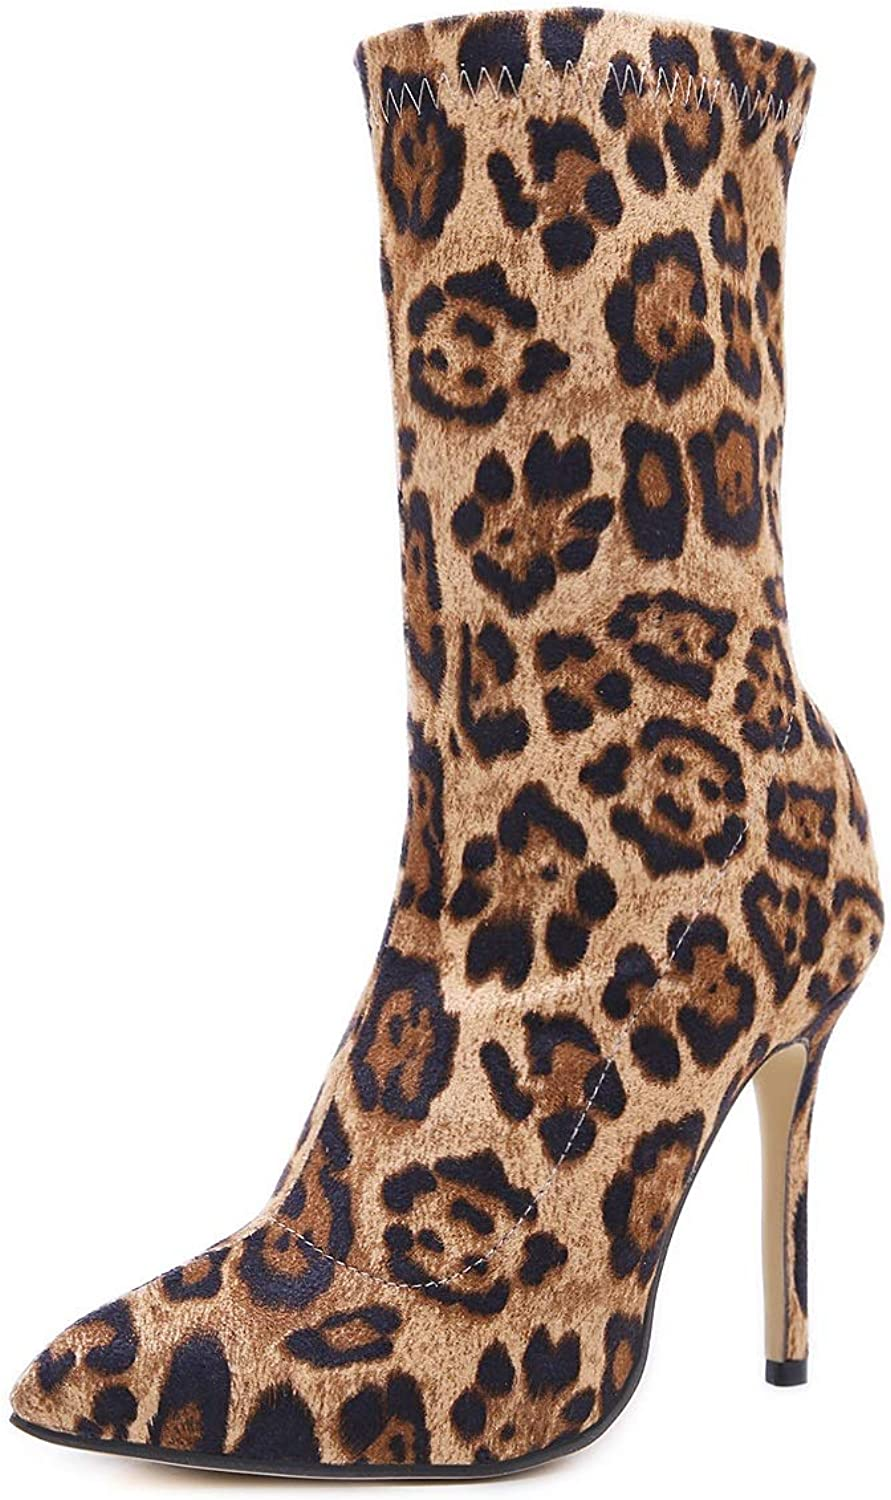 2018 Autumn Winter Stars with The Same Pointed Tide Women's shoes Side Zipper High-Heeled Single Boots Personality Leopard Stiletto Ladies Calf Boots